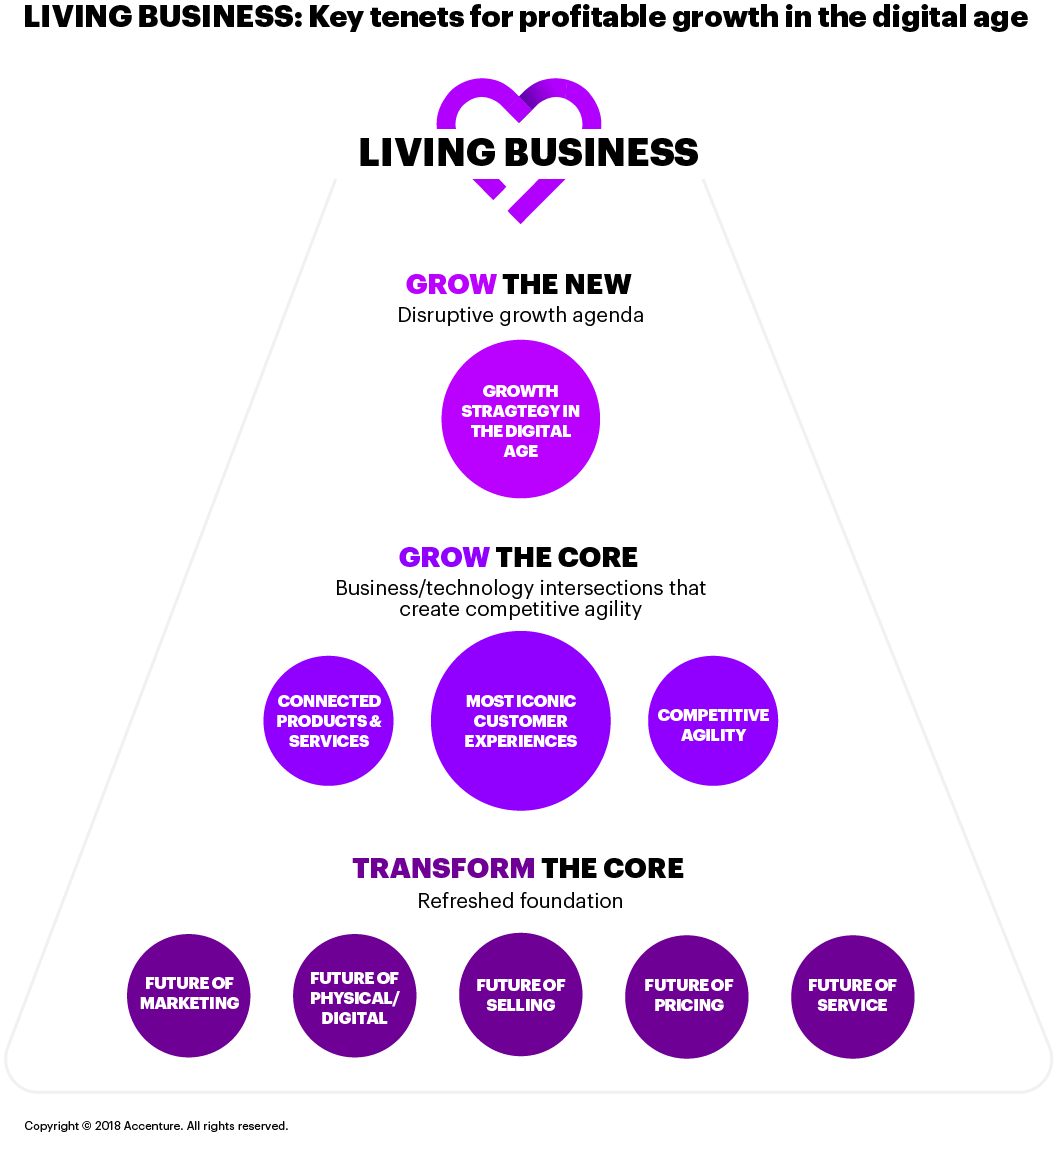 This figure explores key tenets of transforming into a Living Business: developing growth strategies for the digital age and creating connected products and services.